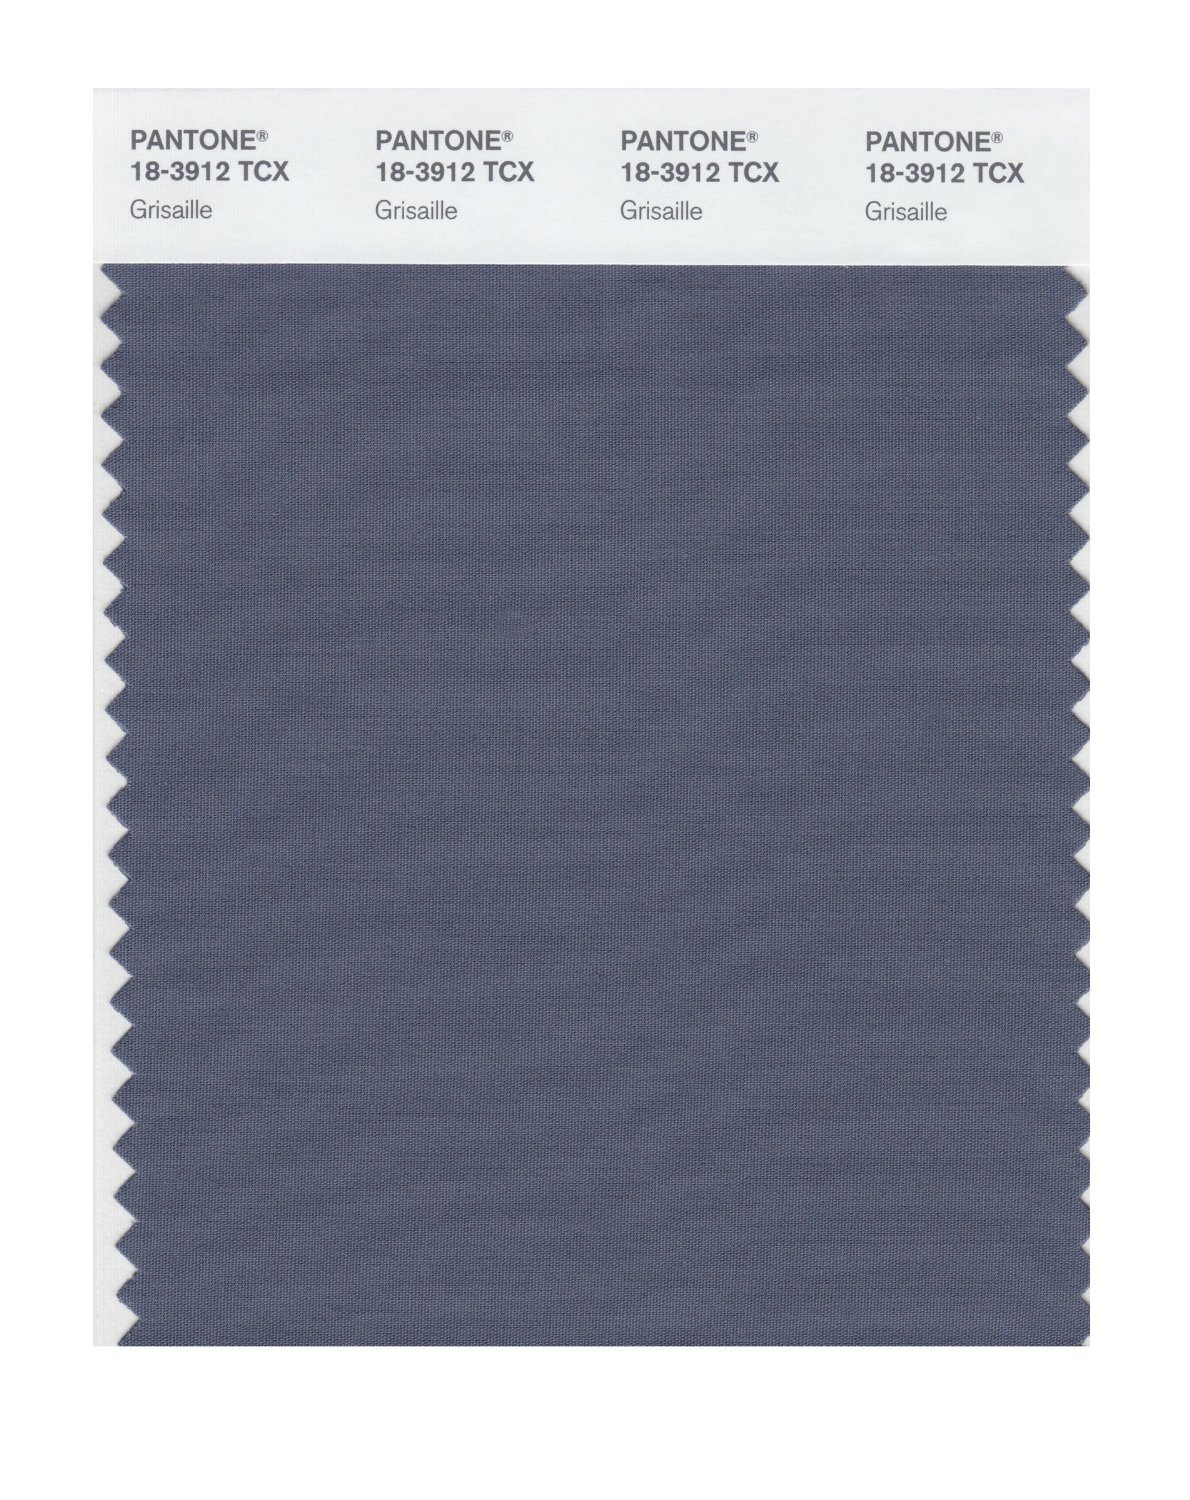 Pantone Smart Swatch 18-3912 Grisaille